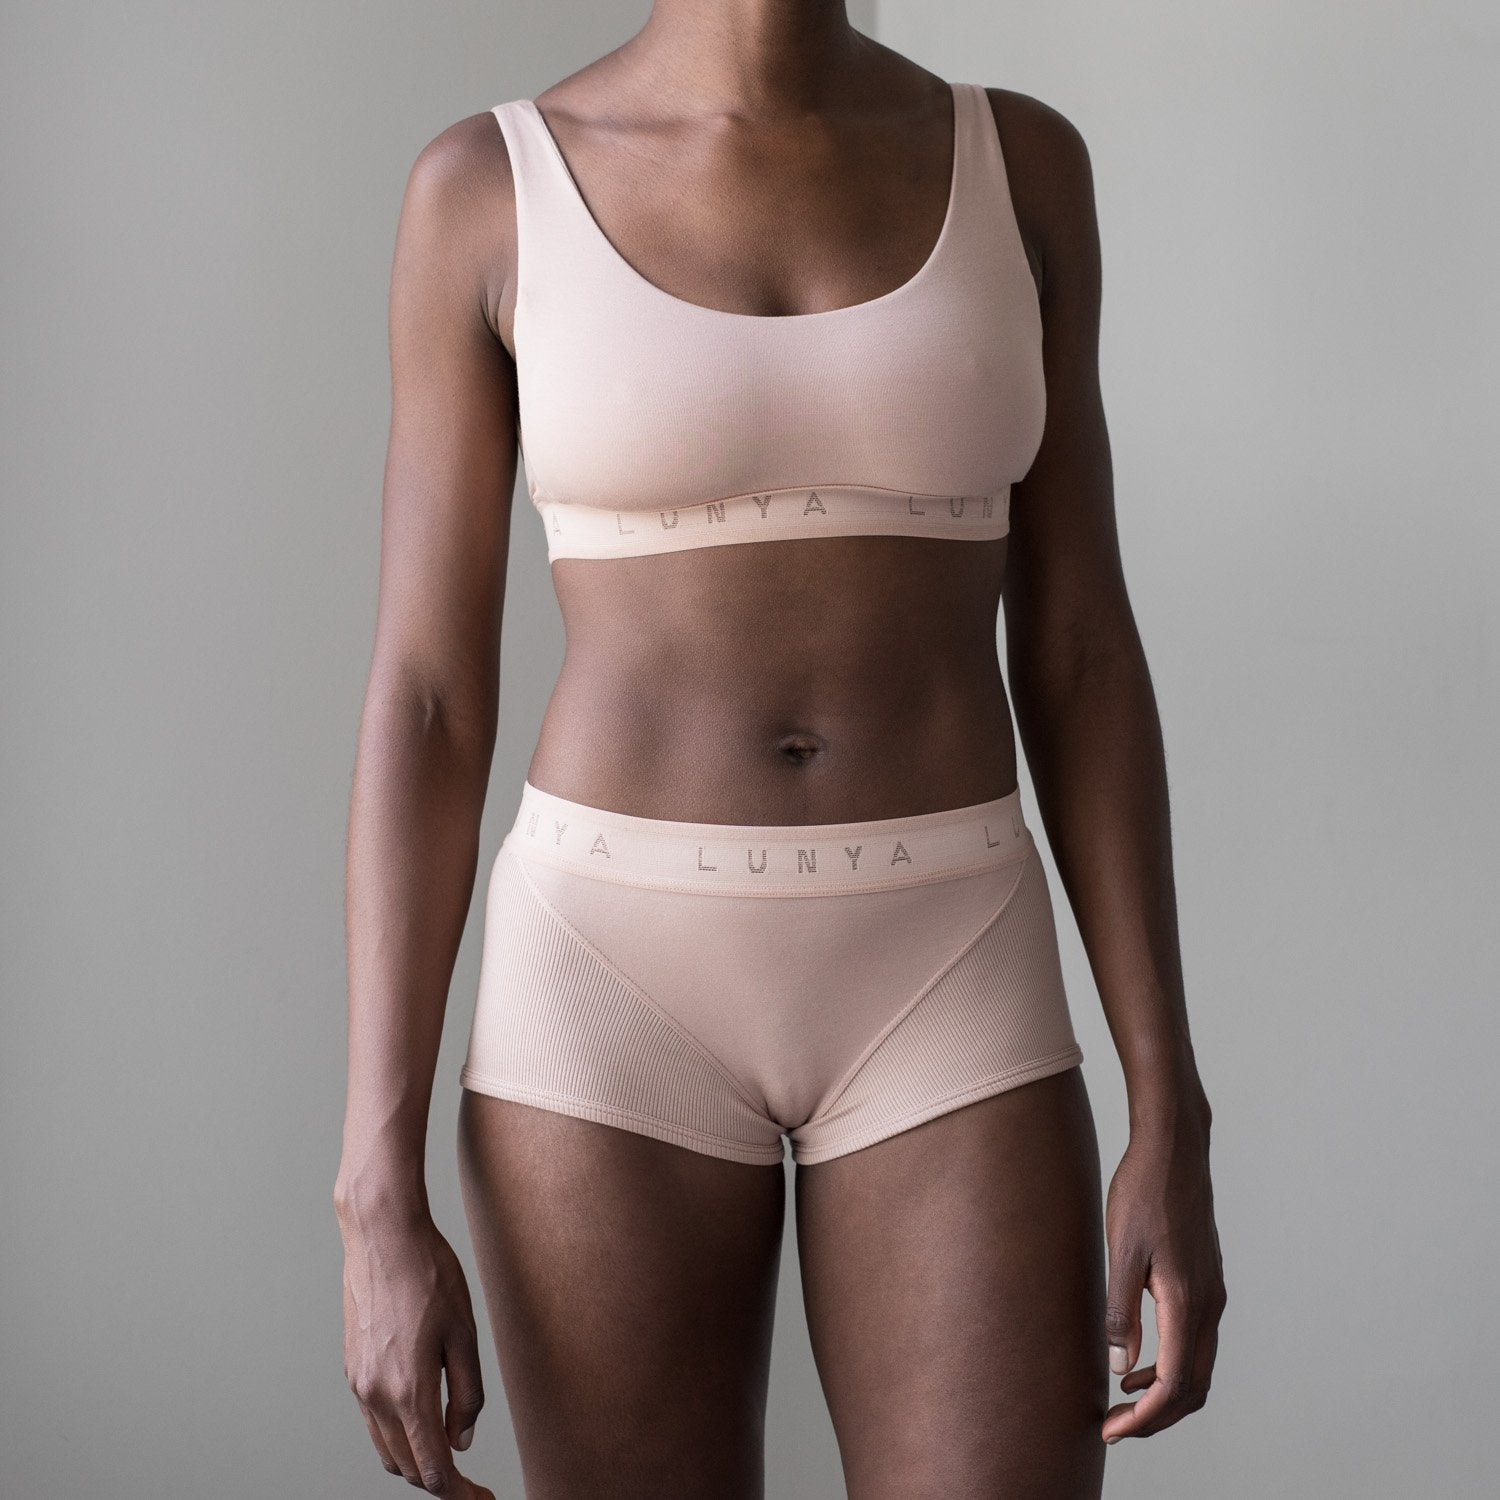 Lunya Sleepwear Supportive Modal Sleep Brief - #Otium Tan